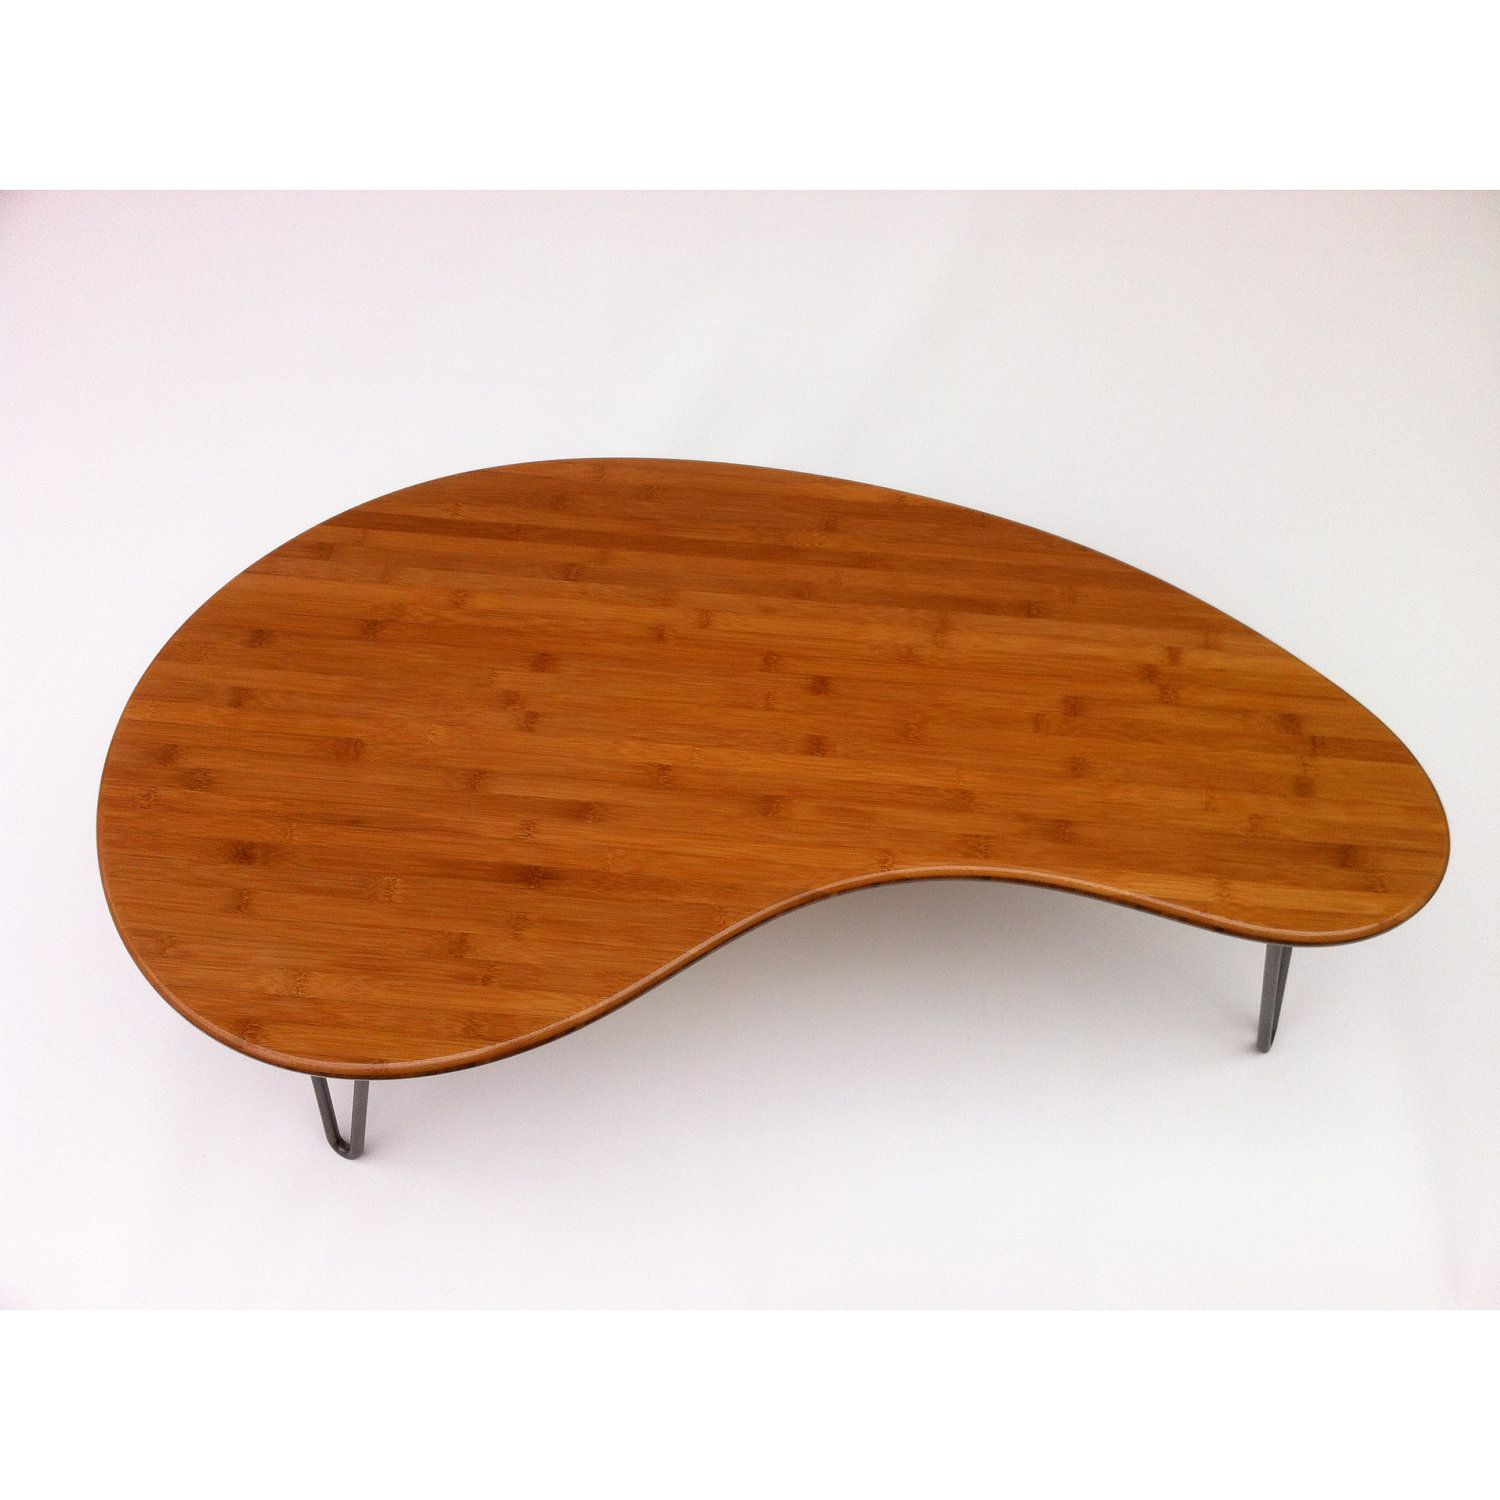 Mid Century Modern Coffee Table Kidney Bean Shaped Atomic Era